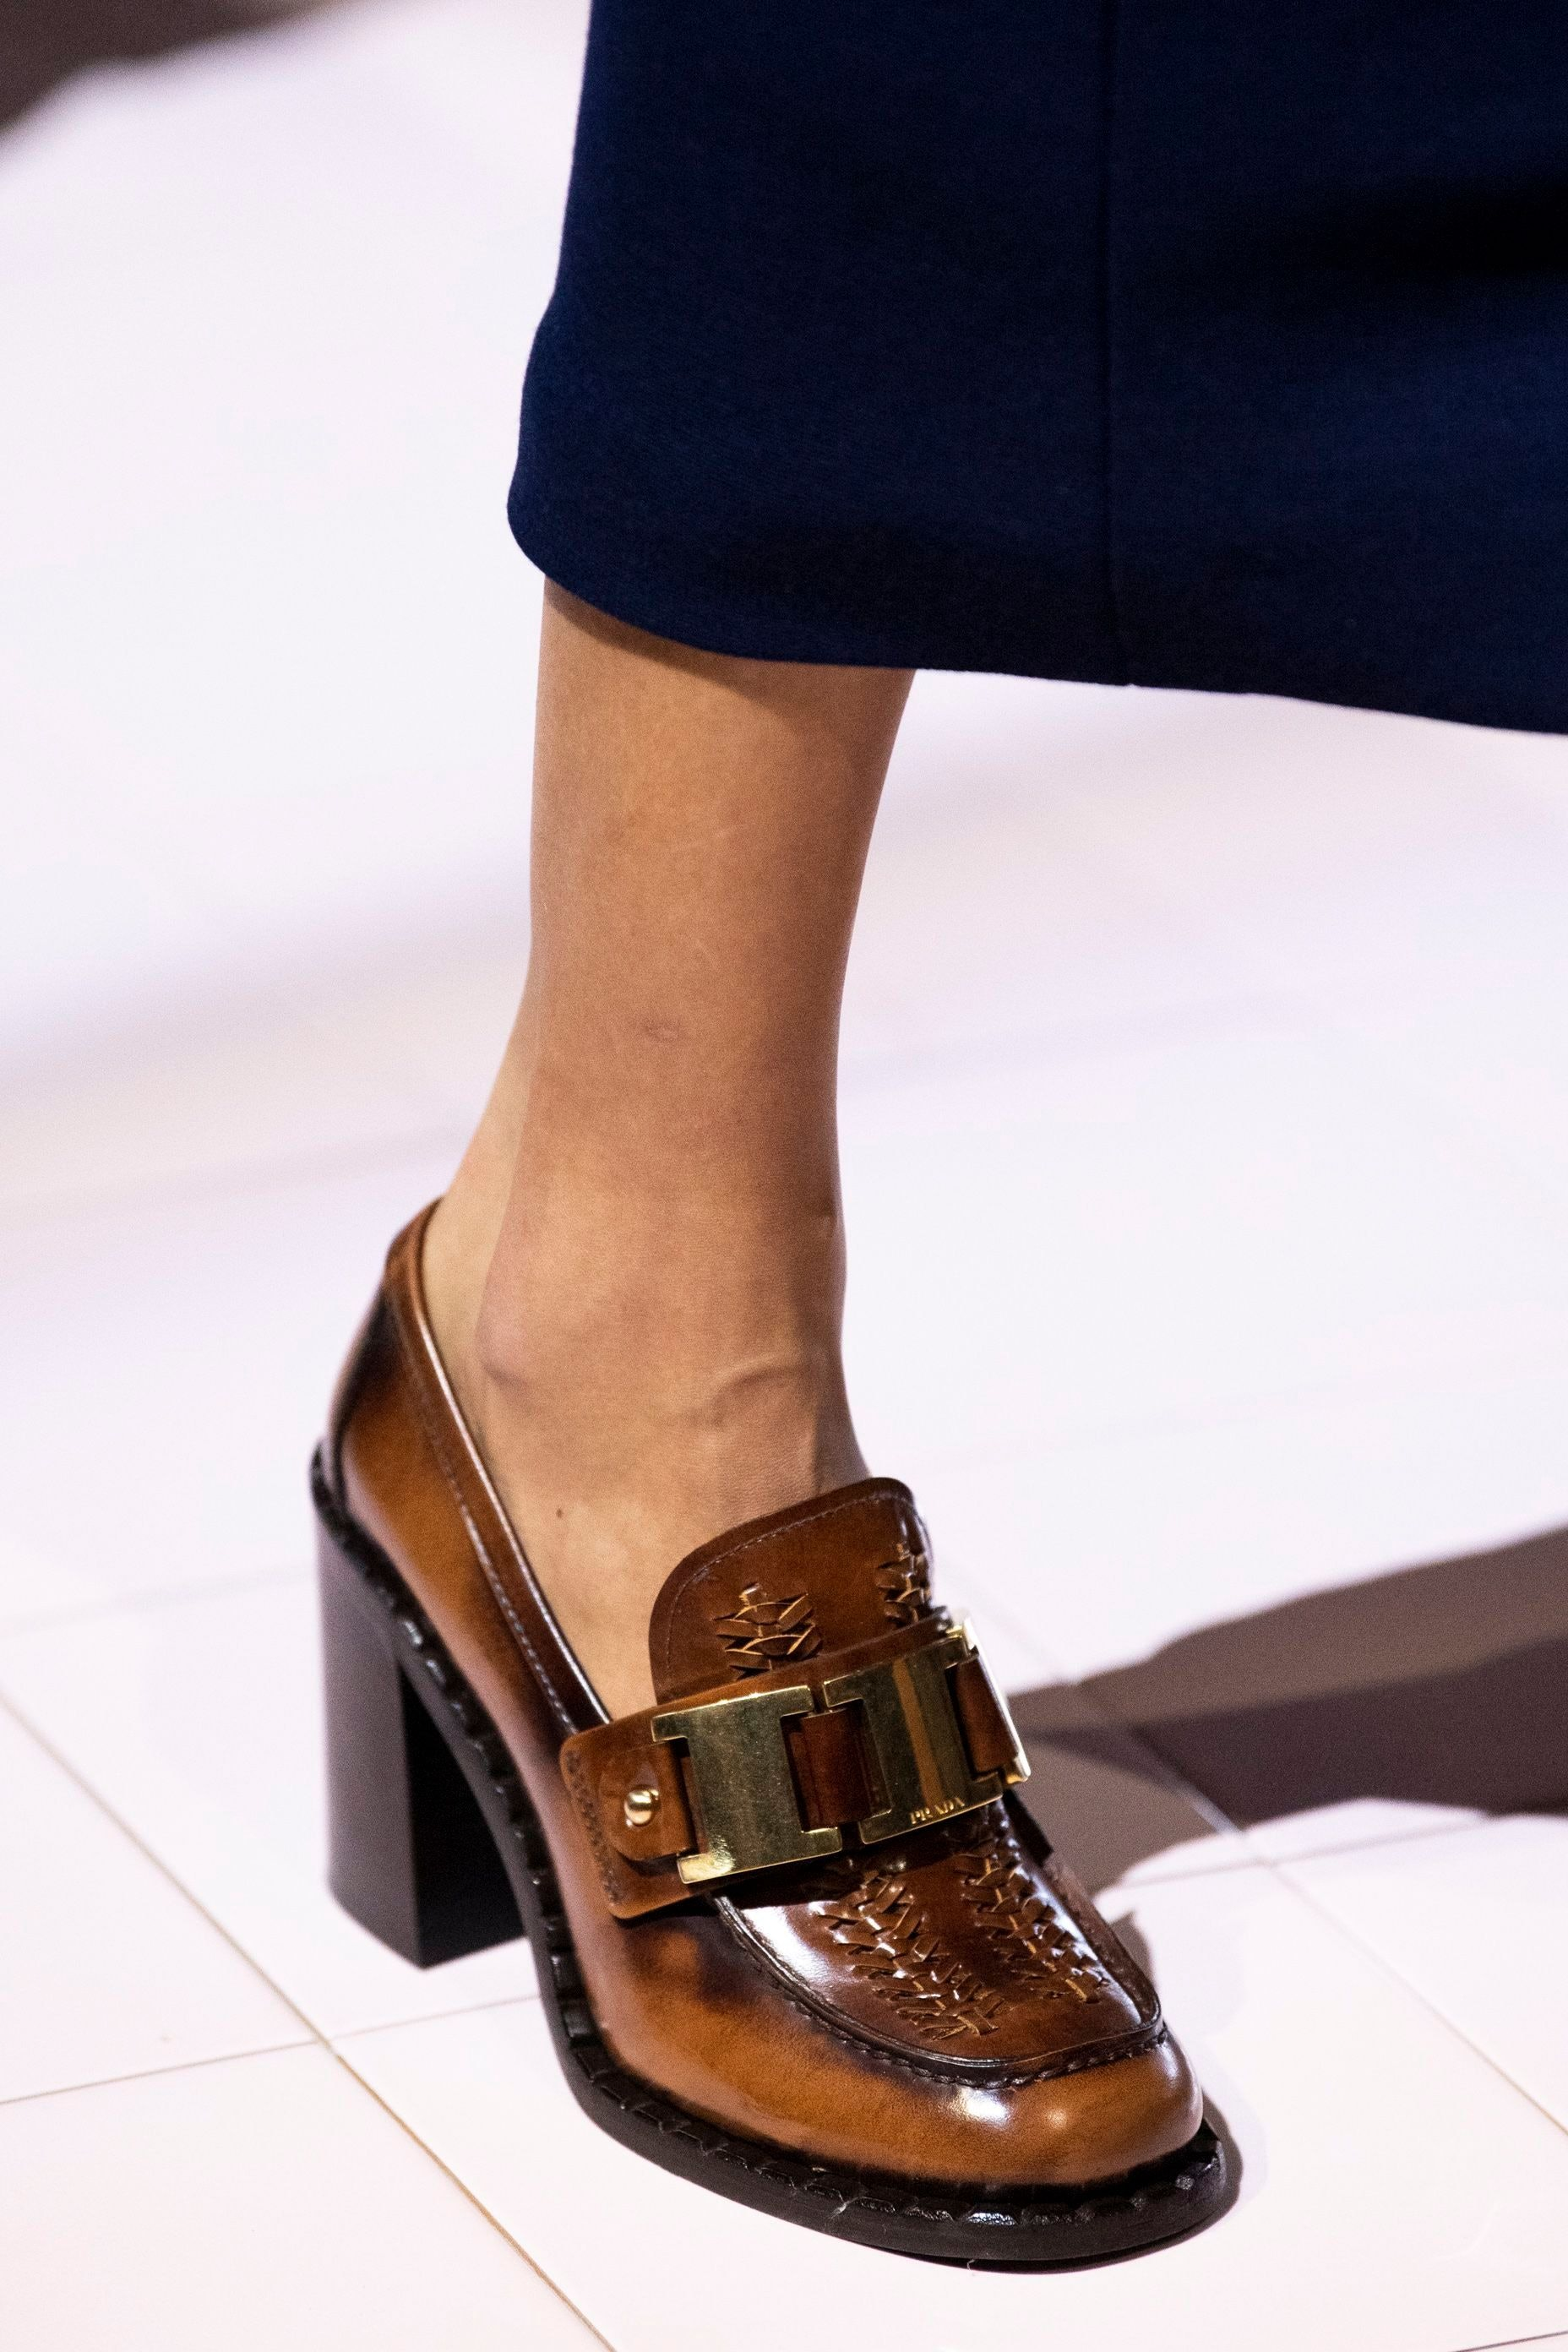 The Loafers Shoe Trend Will Be Huge in 2020